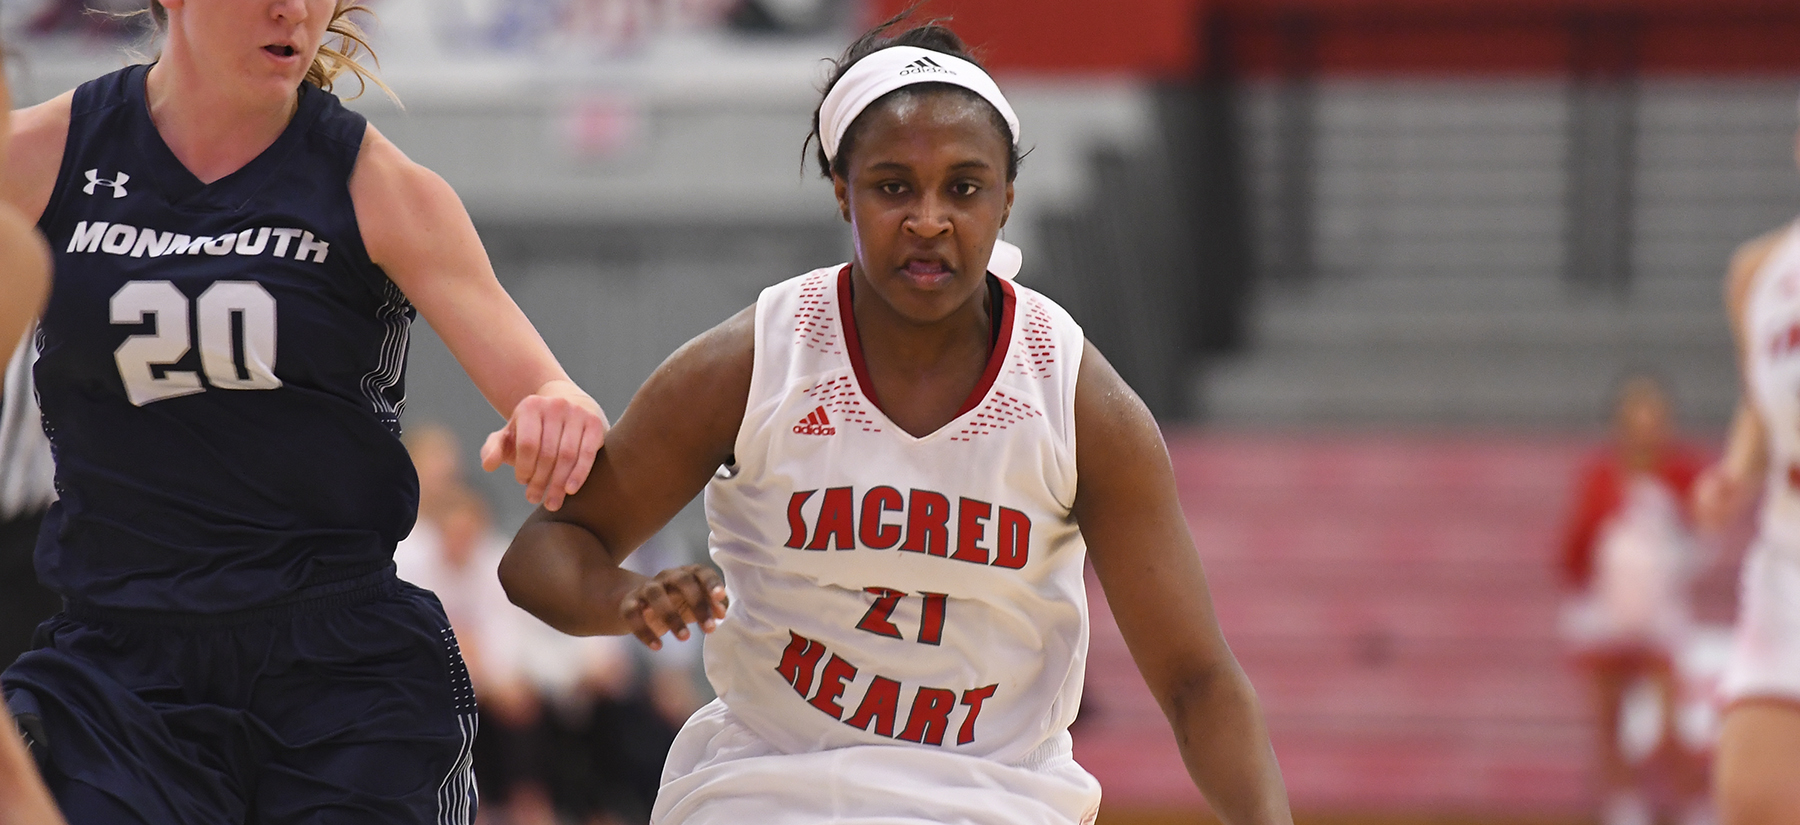 Candice Leatherwood scored 14 at home versus Stony Brook on Tuesday. (Credit: Steve McLaughlin)